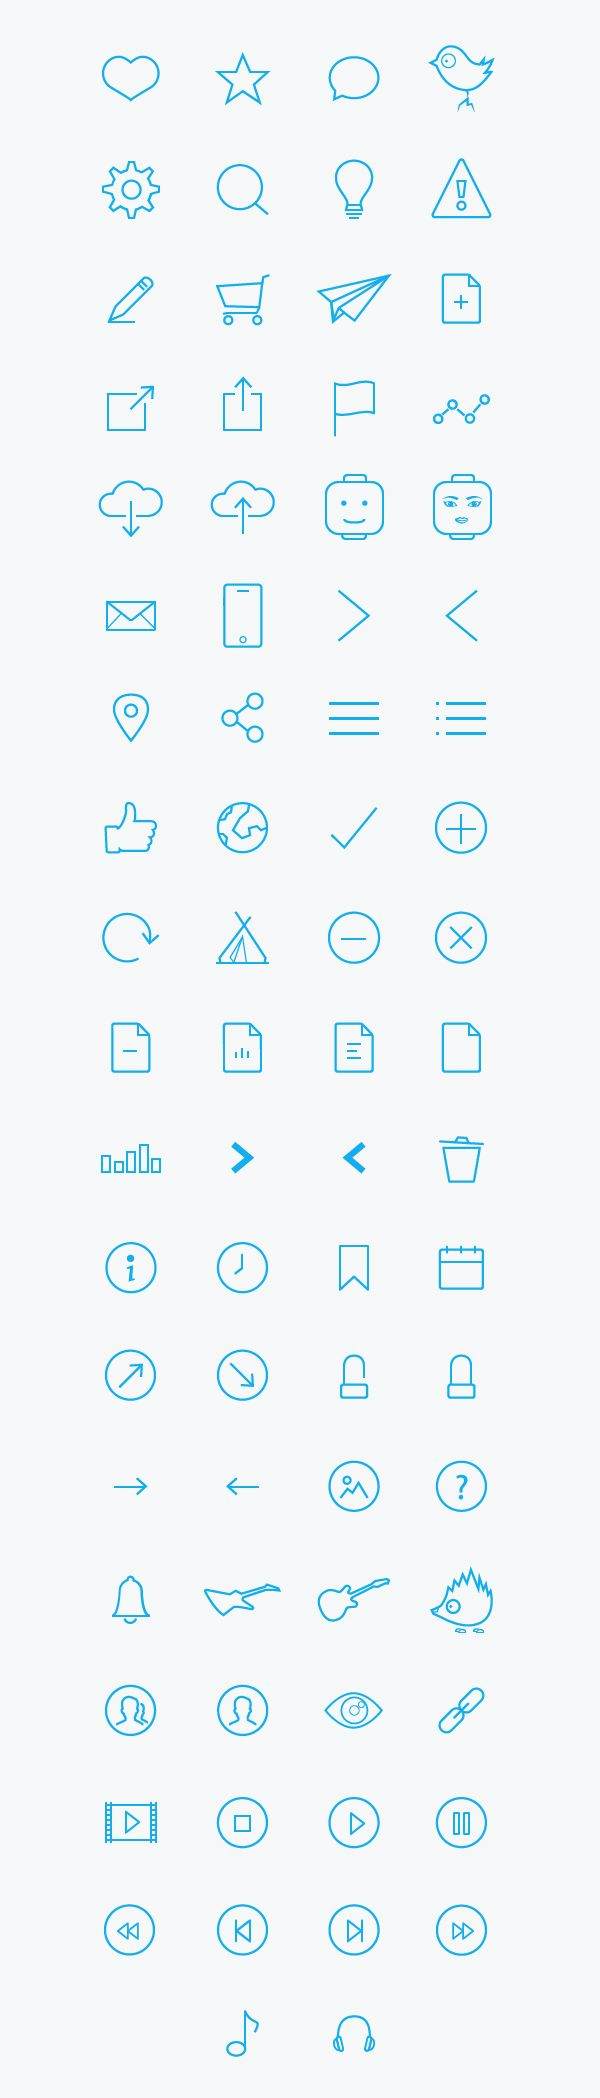 Bollhavet Free Outline Icons #freeicons #iconset #lineicons #vectoricons #psdicons #flaticons